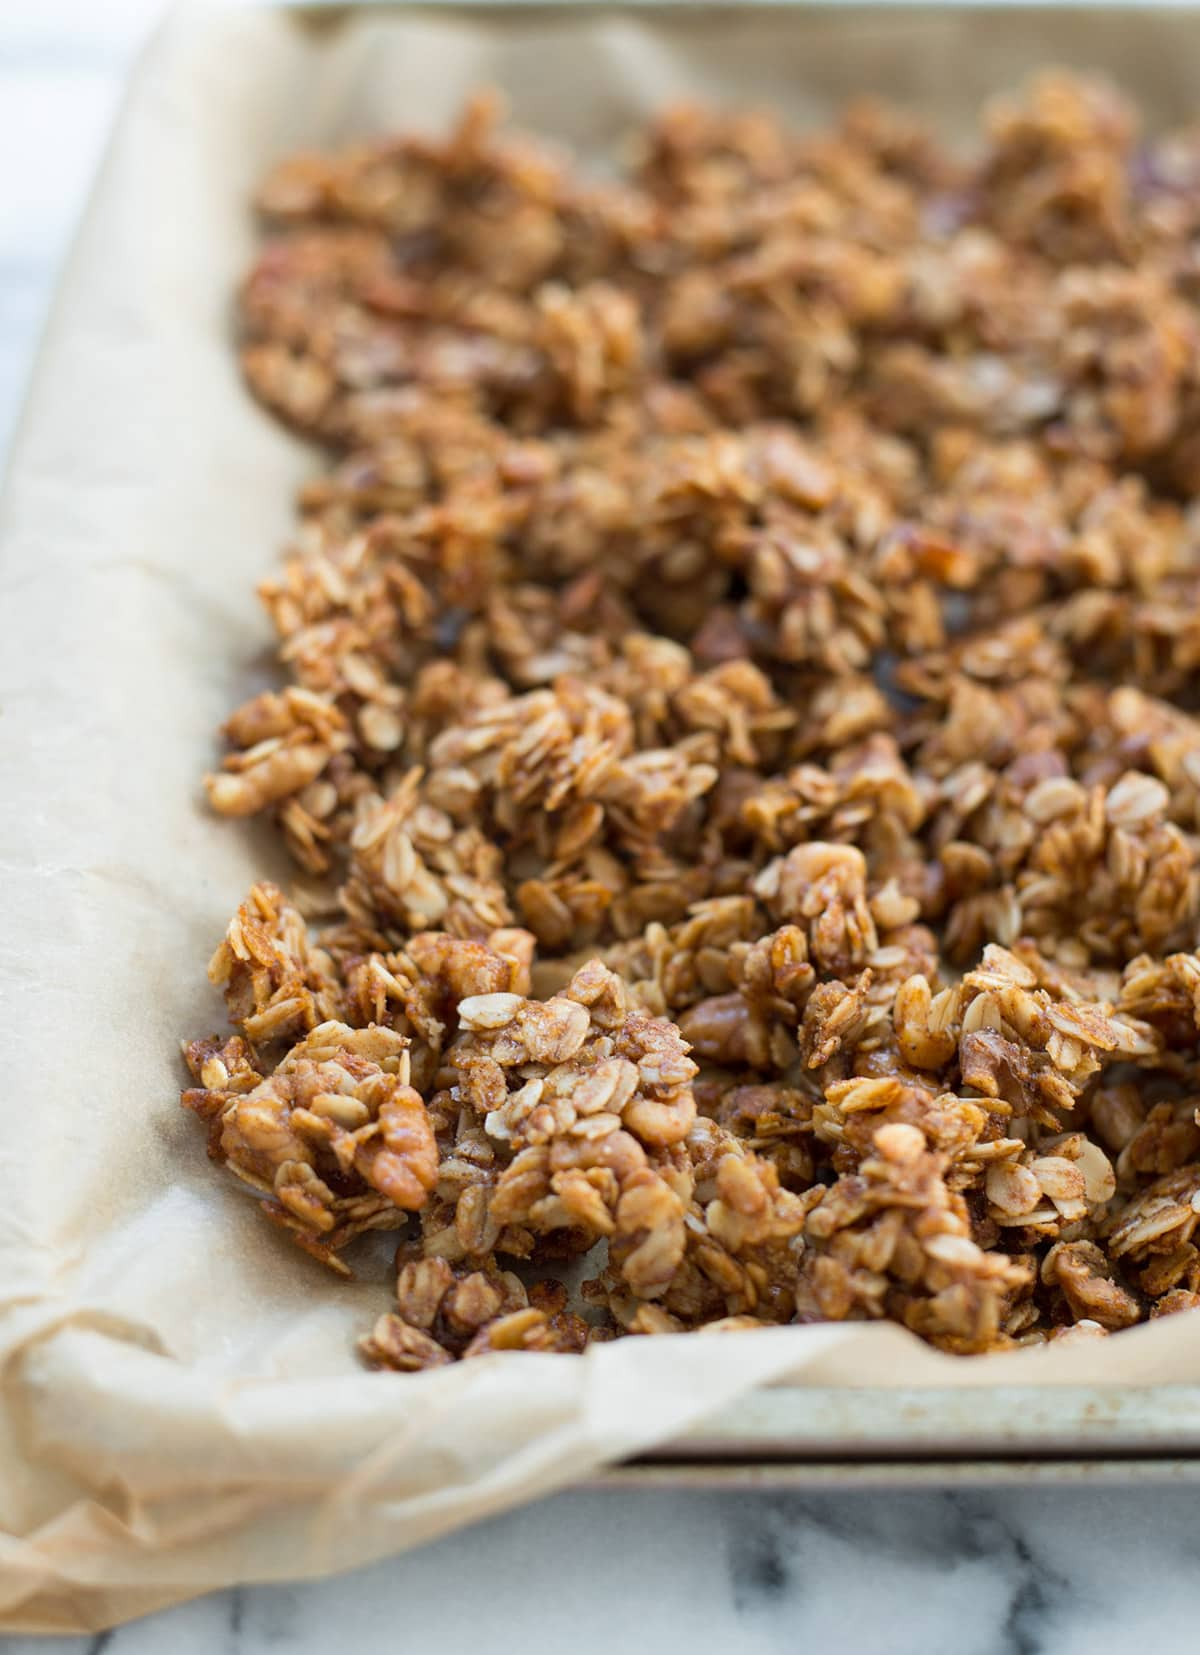 Homemade granola baking.. Healthy Easy Baked Apple Recipe with Spiced Granola and Yogurt - Sugar & Cloth - Houston Blogger - Fall - Recipe